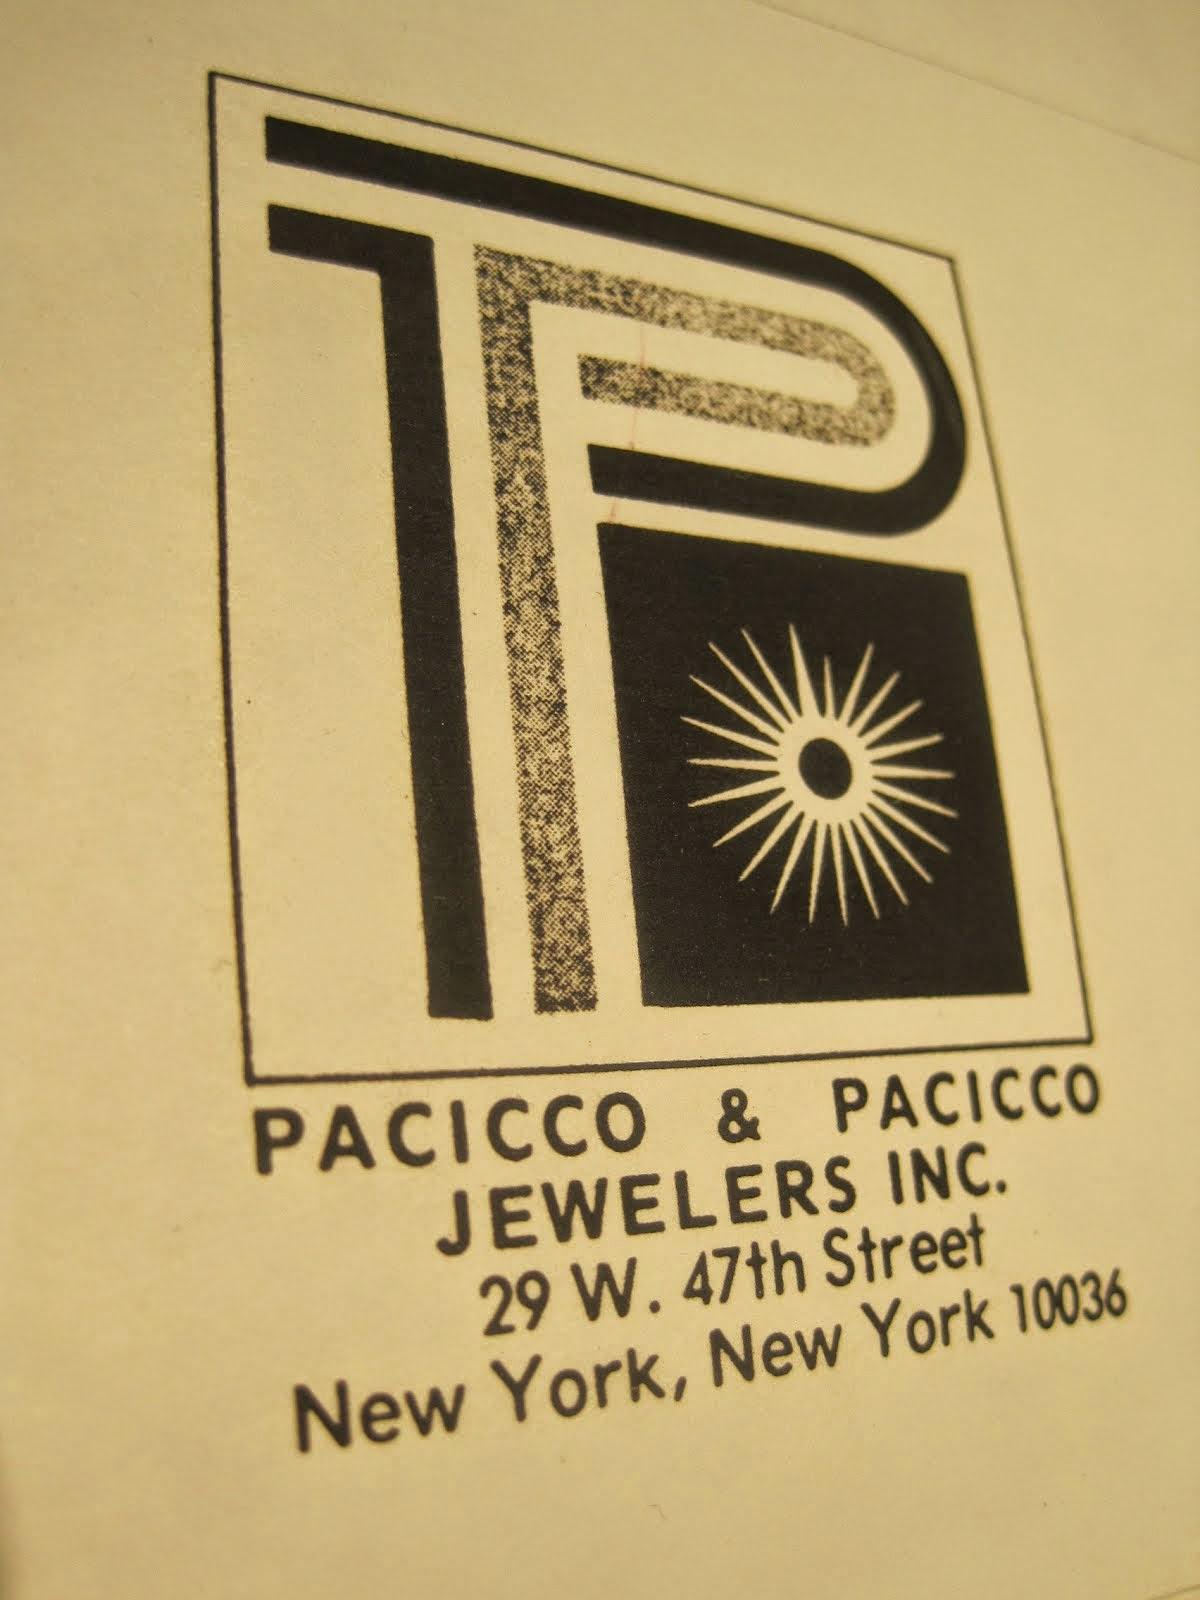 Pacicco & Pacicco Official Jewelers of Whom You Know